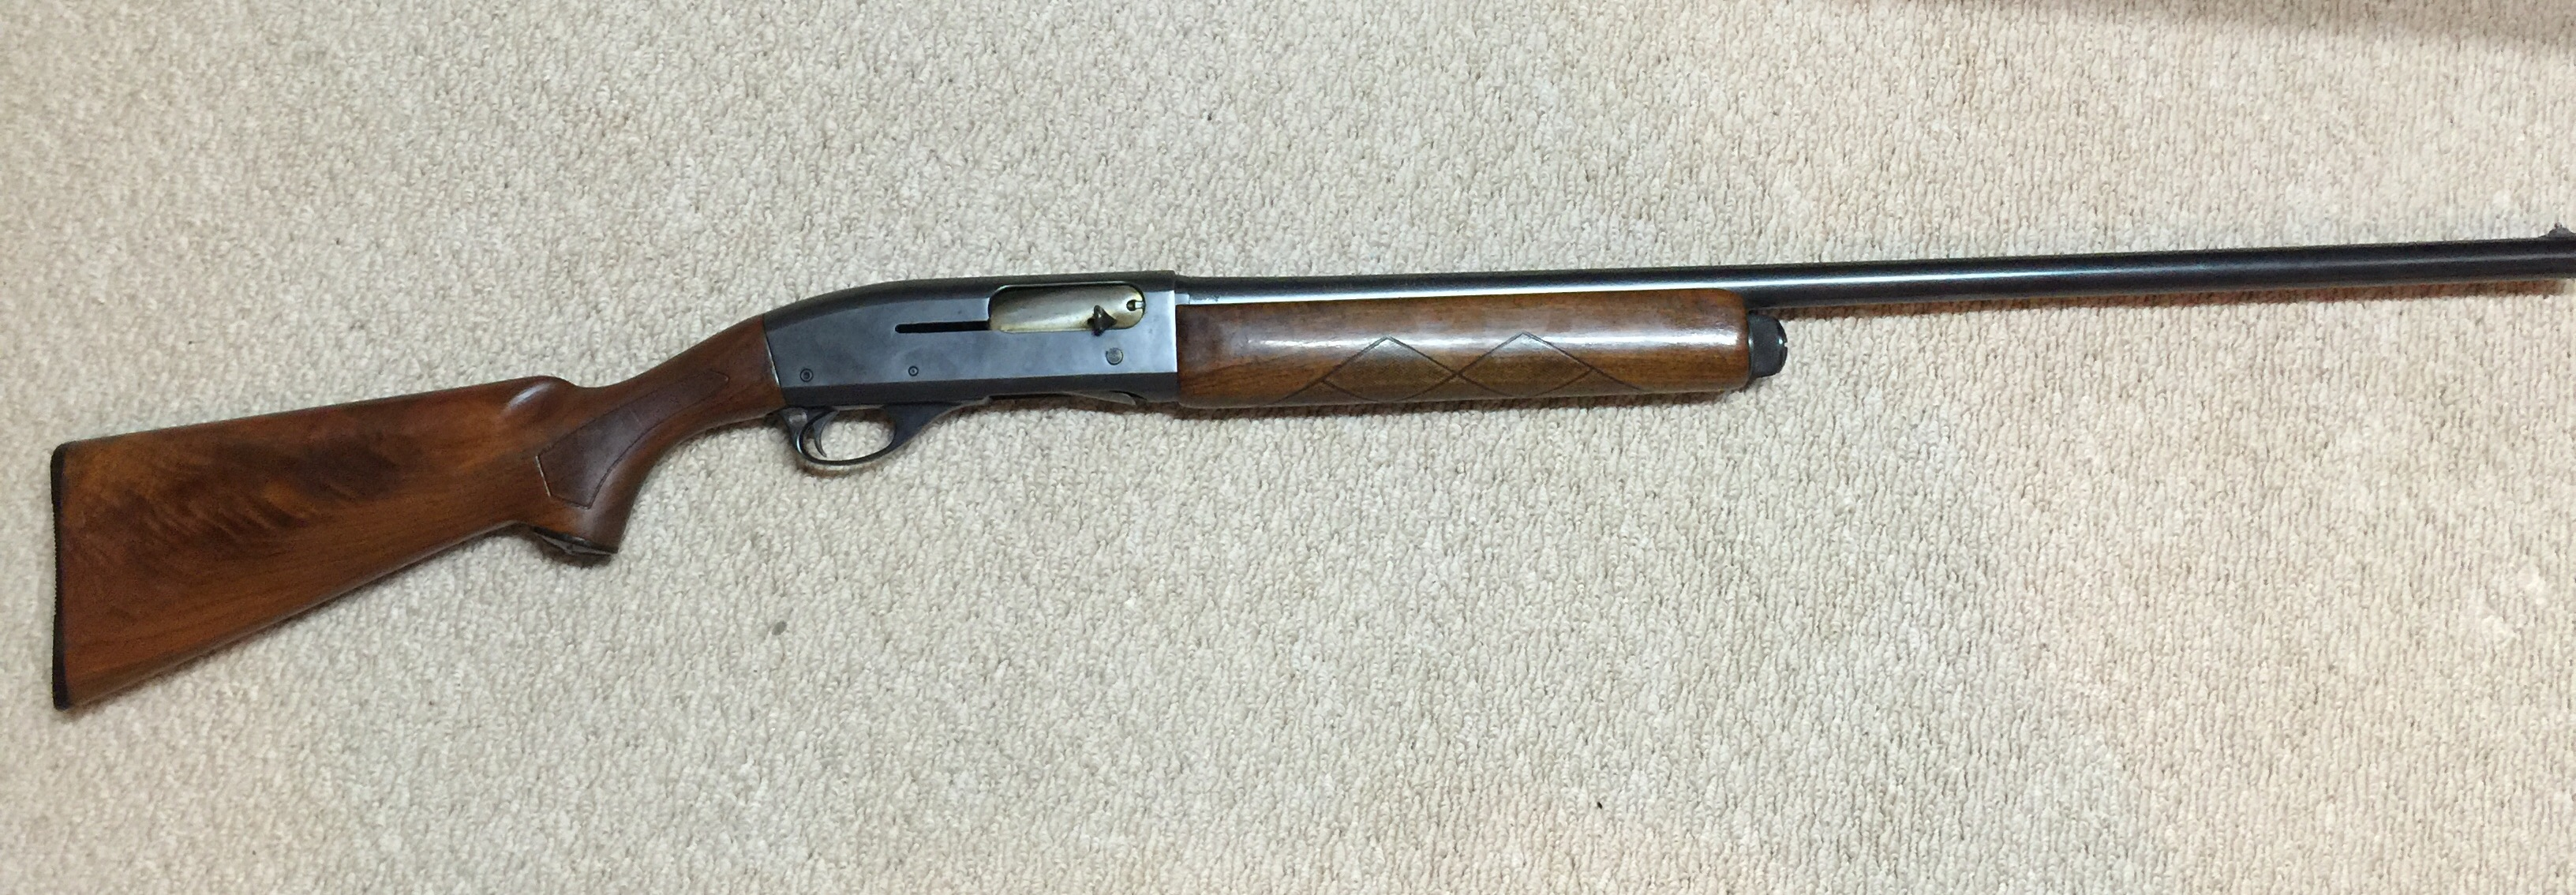 Remington Model 11-48 - Wikipedia